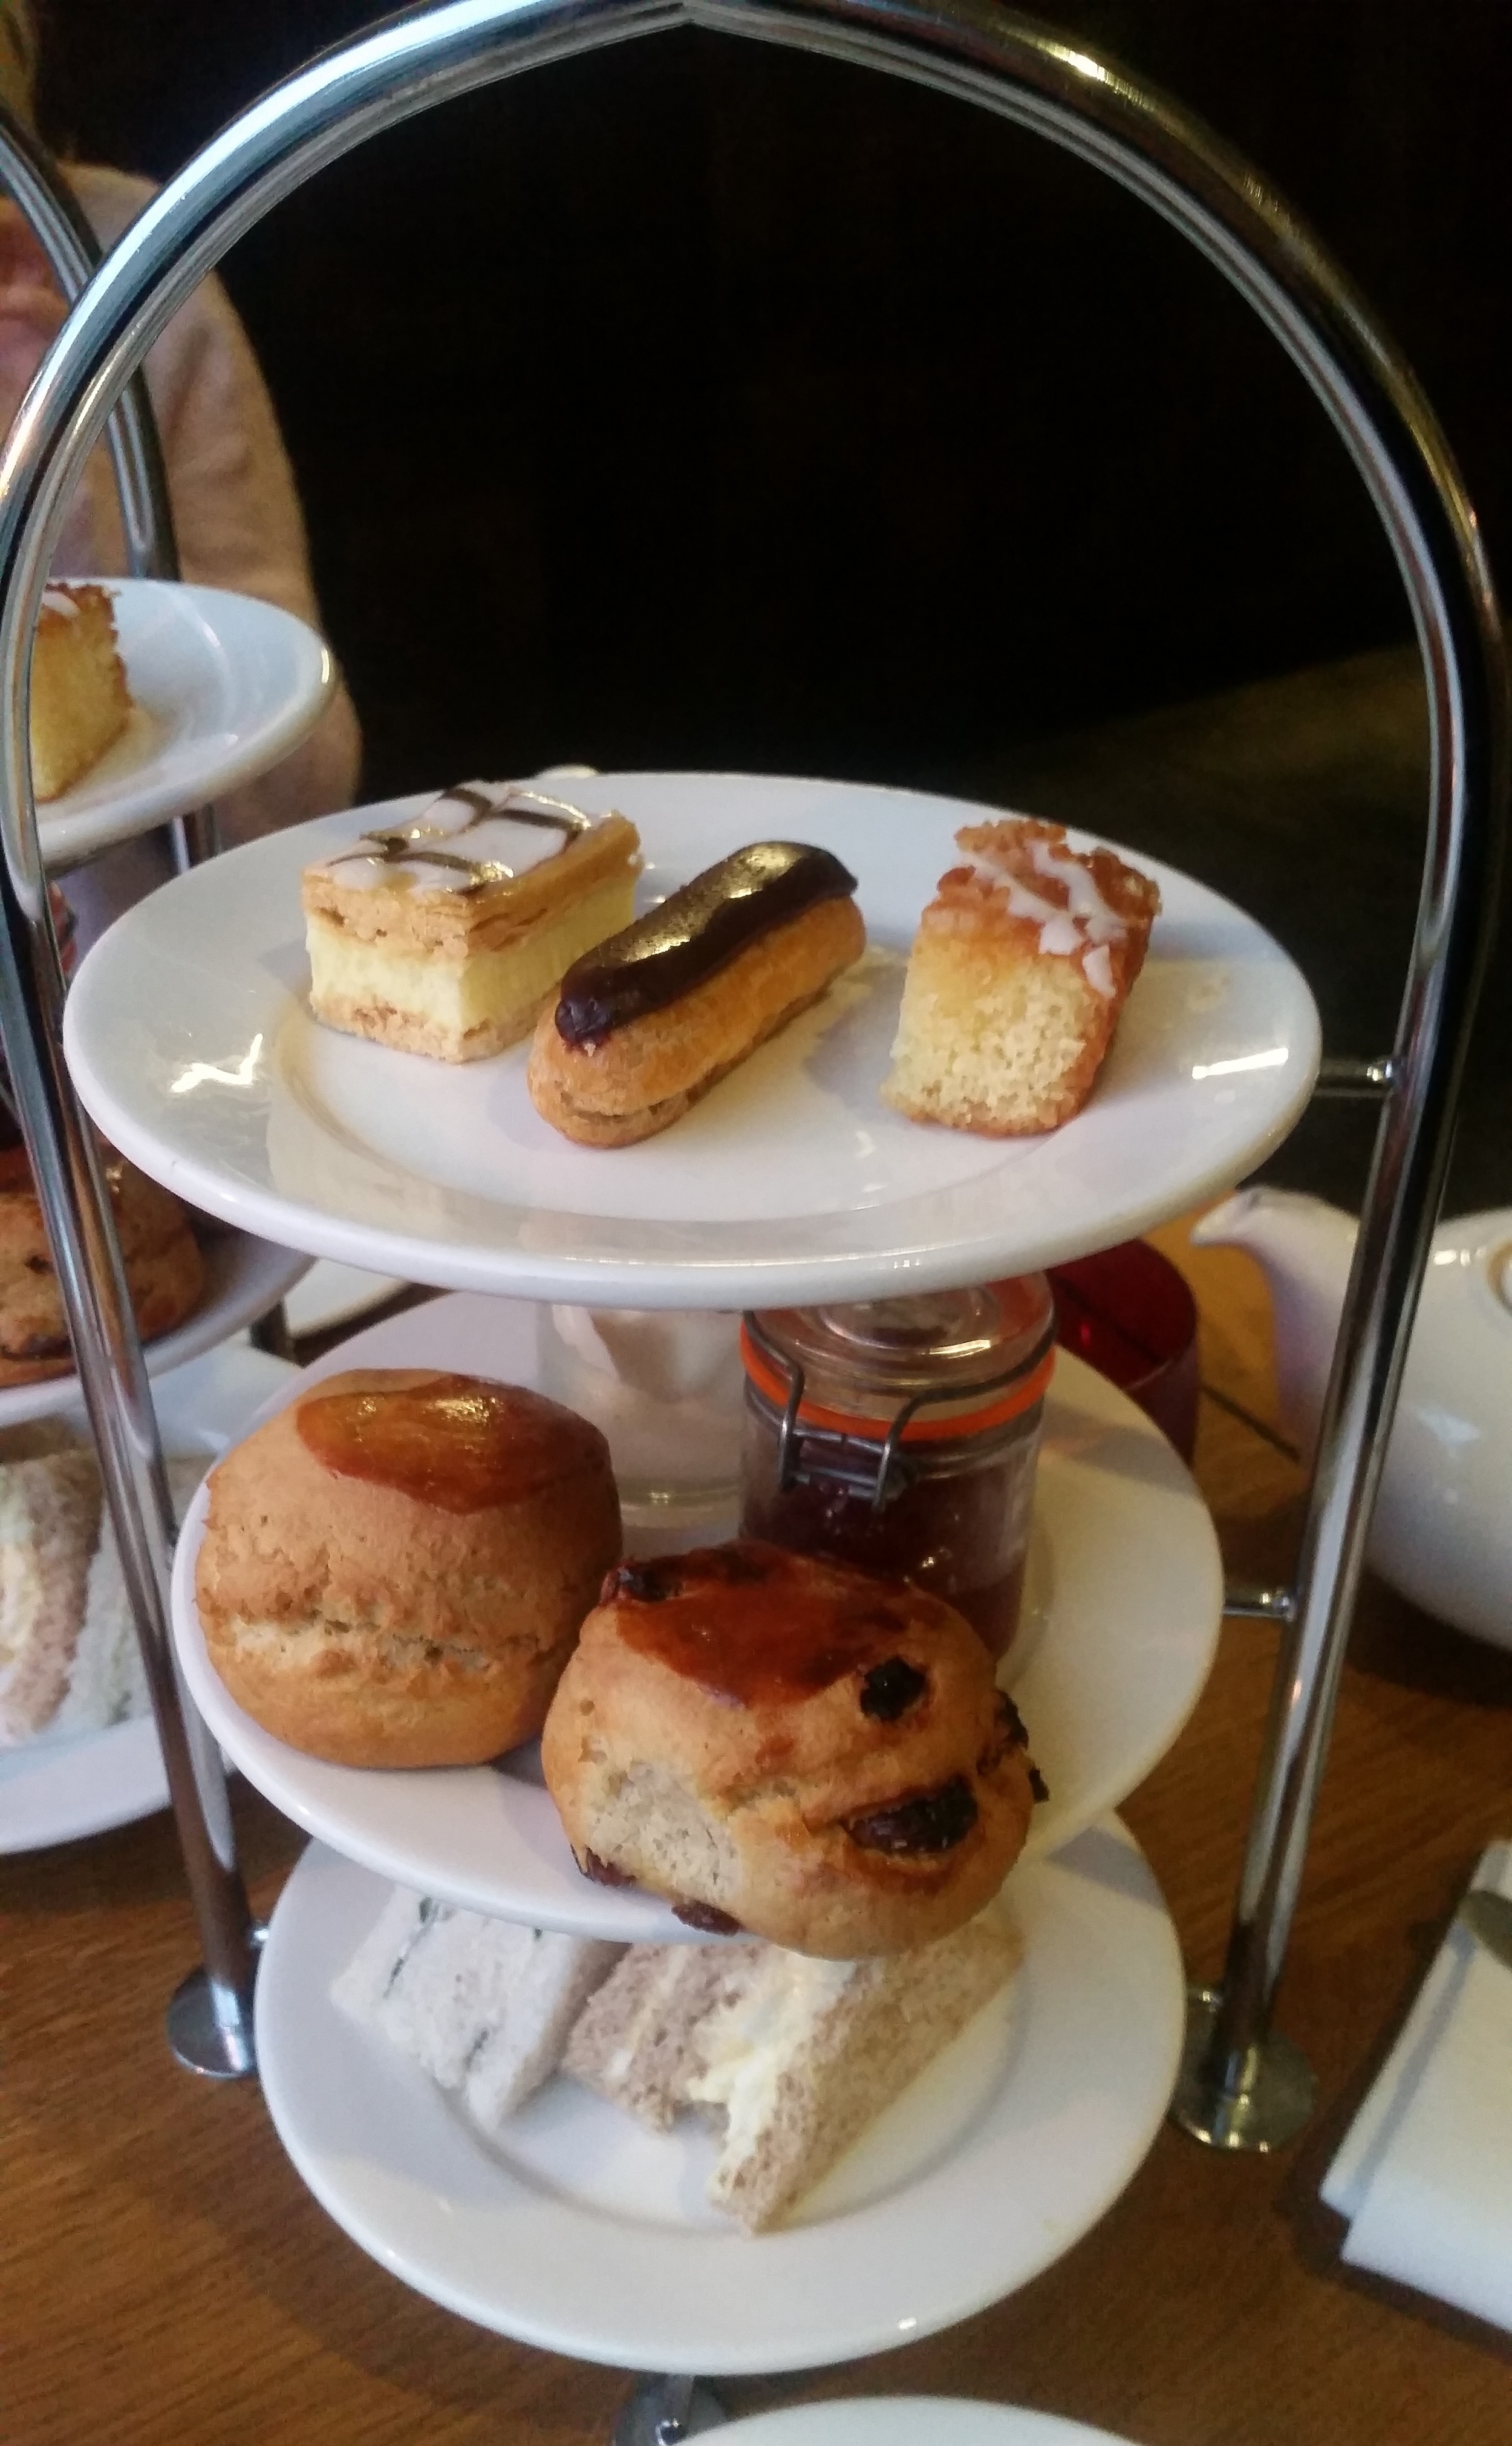 Review - Afternoon tea at Perkin Reveller